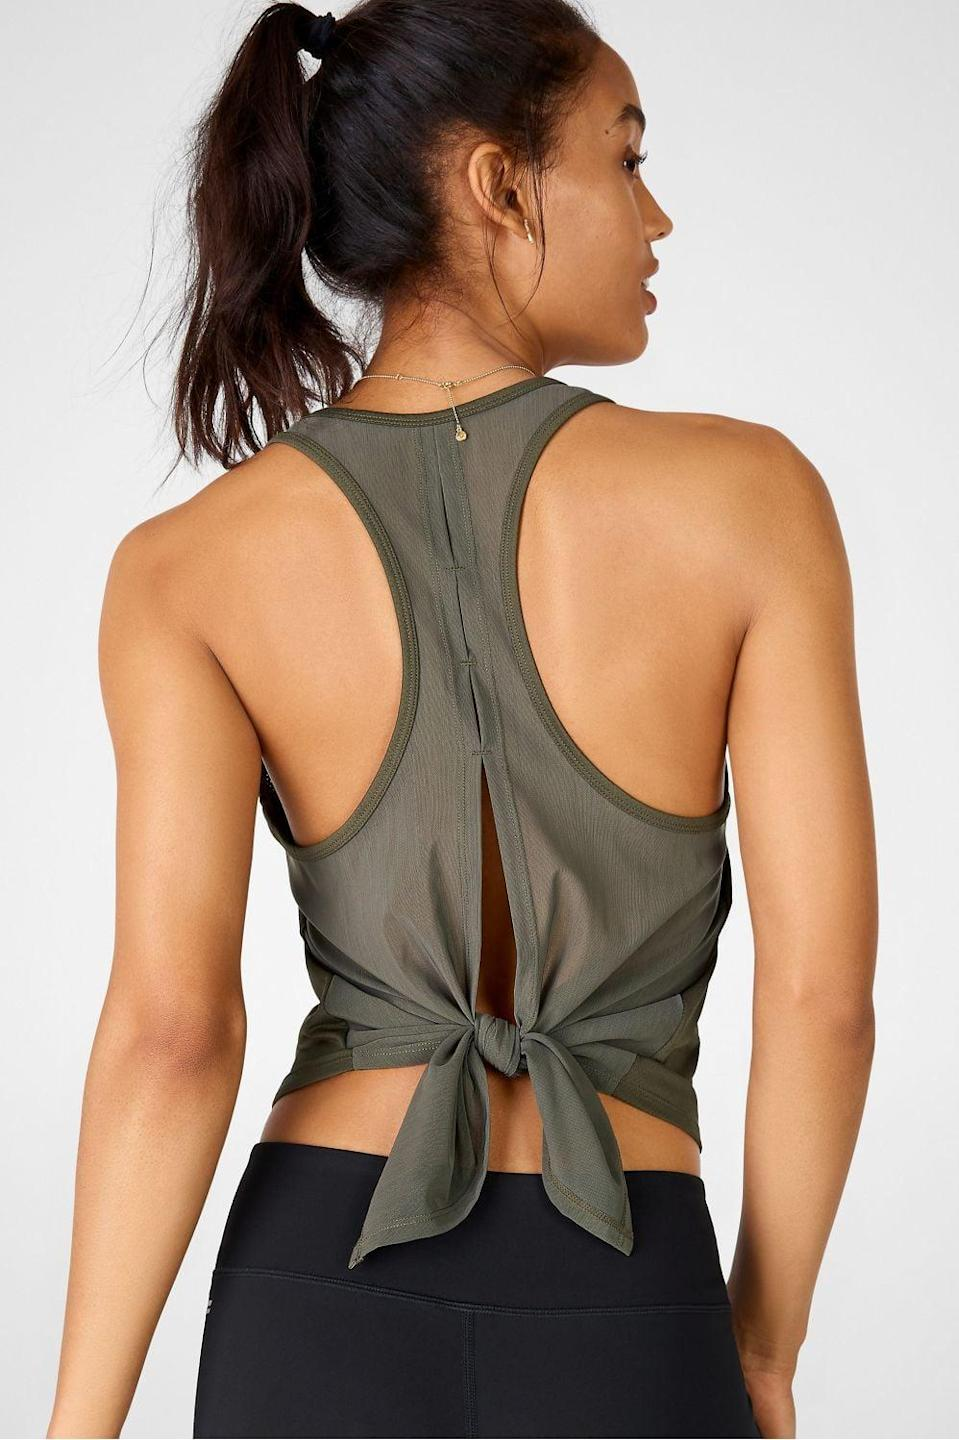 "<p>You can't go wrong with this classic <a href=""https://www.popsugar.com/buy/Fabletics-Mina-Tie-Up-Tank-586511?p_name=Fabletics%20Mina%20Tie%20Up%20Tank&retailer=fabletics.com&pid=586511&price=15&evar1=fit%3Auk&evar9=46472938&evar98=https%3A%2F%2Fwww.popsugar.com%2Ffitness%2Fphoto-gallery%2F46472938%2Fimage%2F47590619%2FFabletics-Mina-Tie-Up-Tank&list1=shopping%2Cworkout%20clothes%2Cfitness%20gear%2Cproducts%20under%20%2450%2C50%20under%20%2450%2Cfitness%20shopping%2Caffordable%20shopping&prop13=api&pdata=1"" class=""link rapid-noclick-resp"" rel=""nofollow noopener"" target=""_blank"" data-ylk=""slk:Fabletics Mina Tie Up Tank"">Fabletics Mina Tie Up Tank</a> ($15, originally $40).</p>"